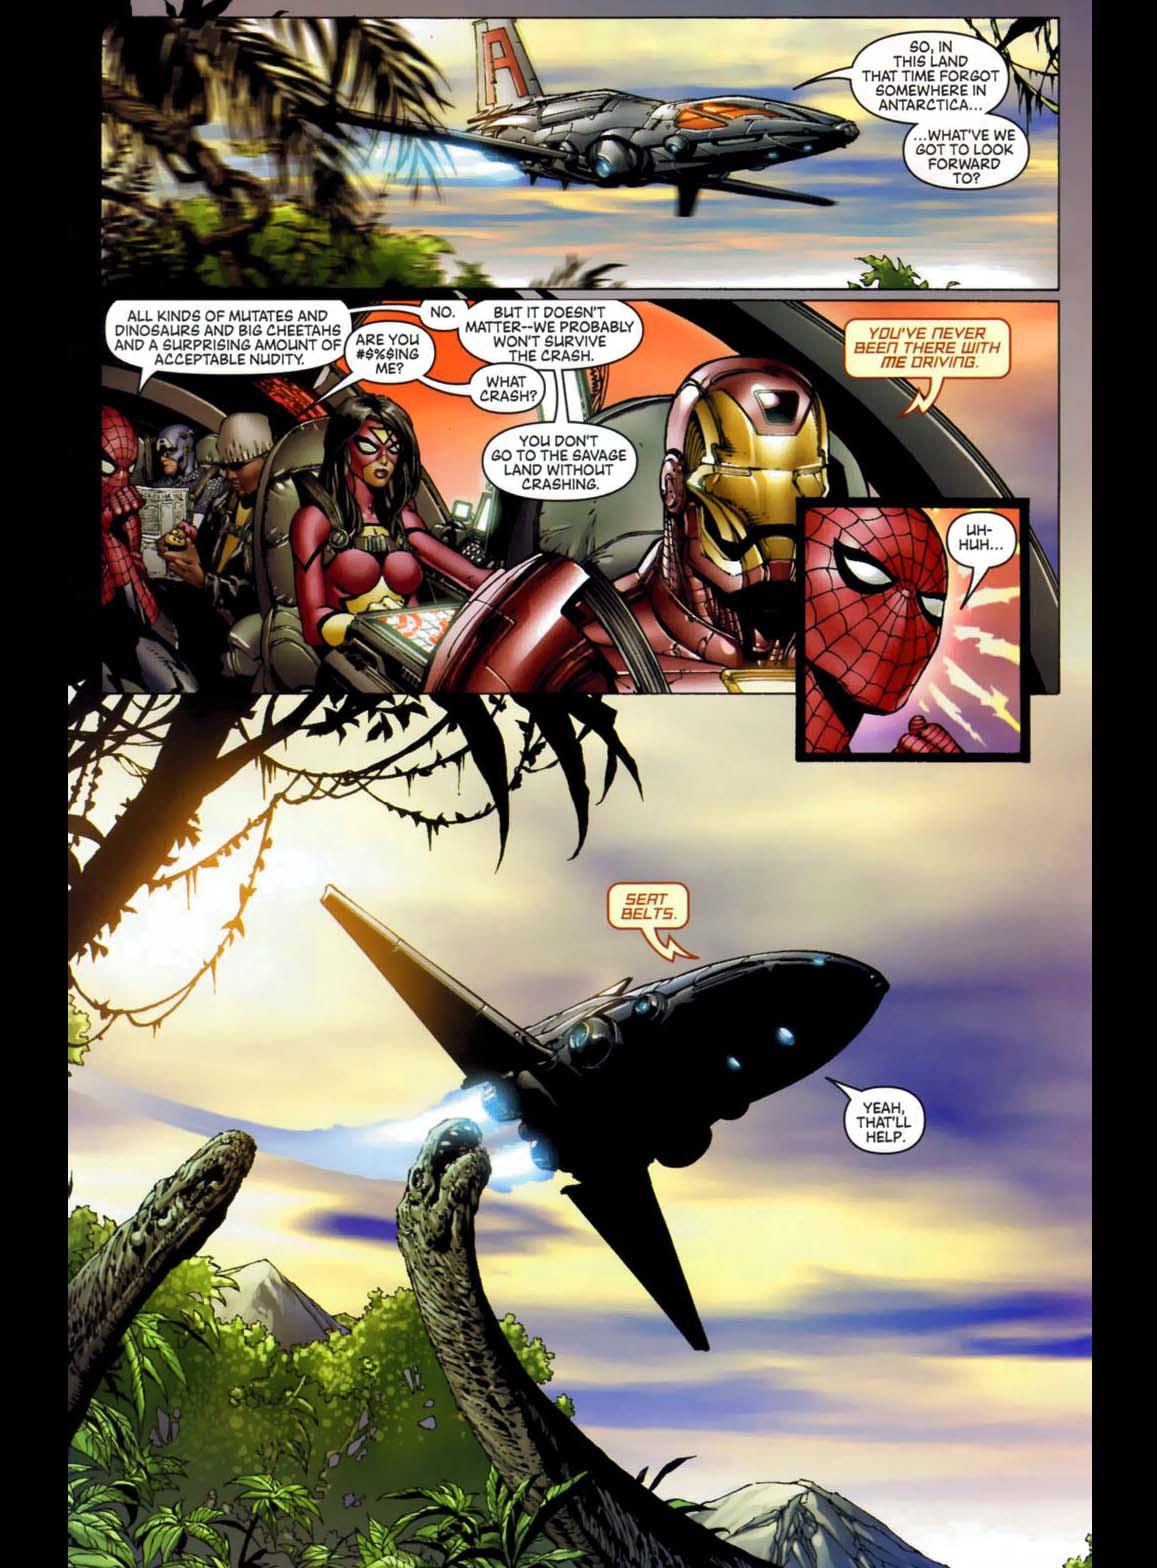 What To Expect In The Savage Land